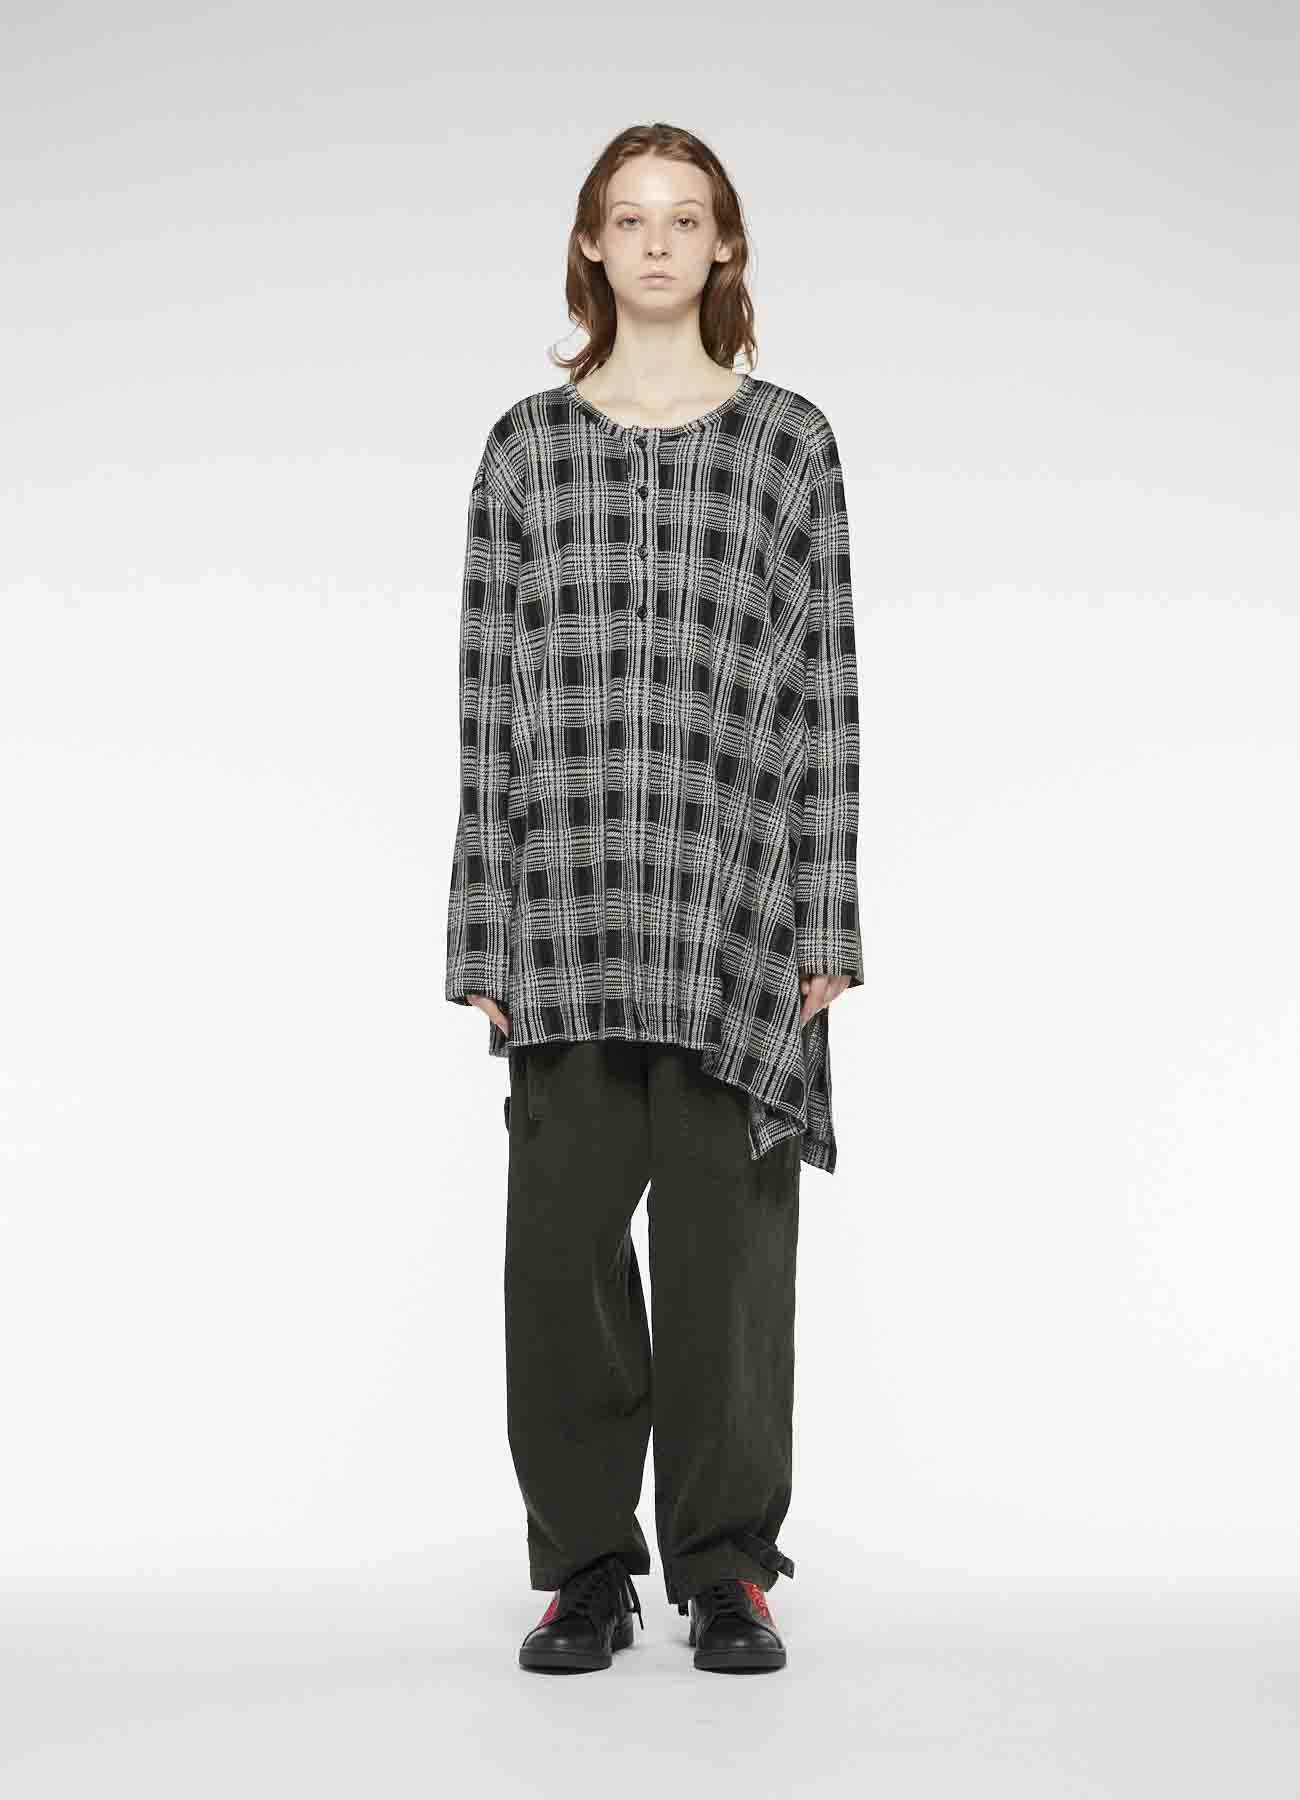 PLAID CUT JACQUARD LIKE FRONT OPEN ROUND-NECKED COLLAR T-SHIRT